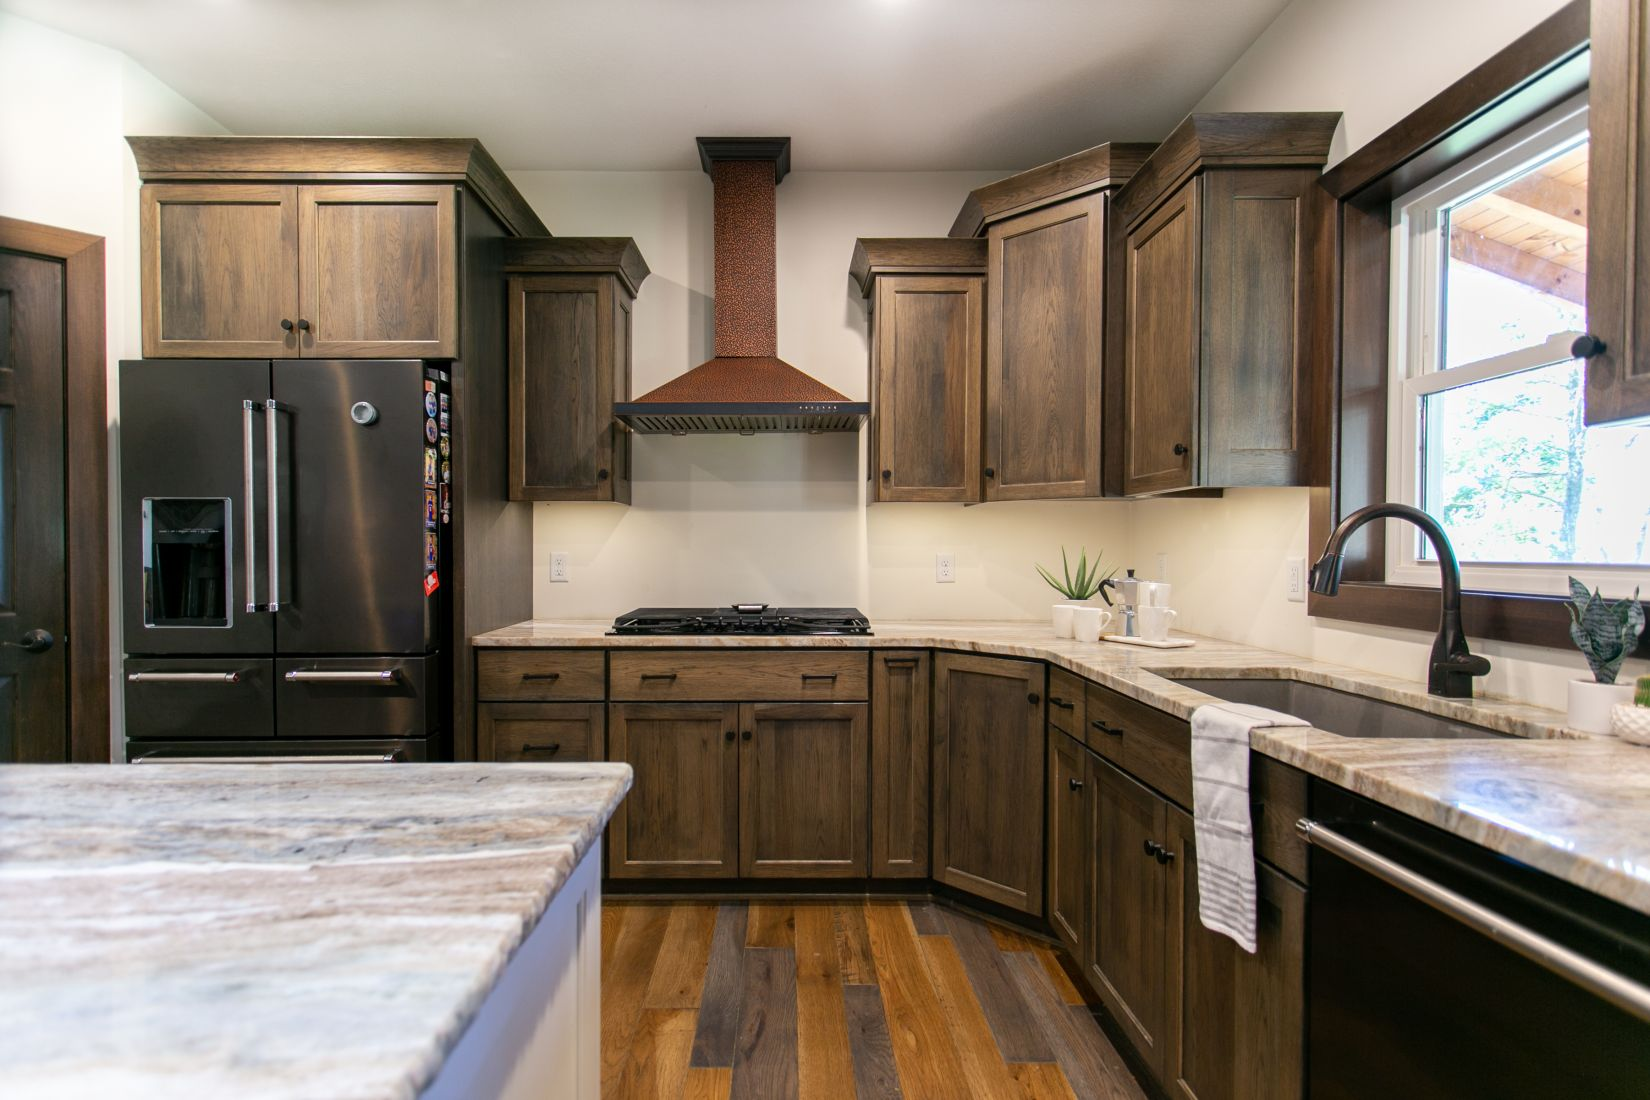 Custom Cabinets with Granite Counter Tops and Copper Stove Hood